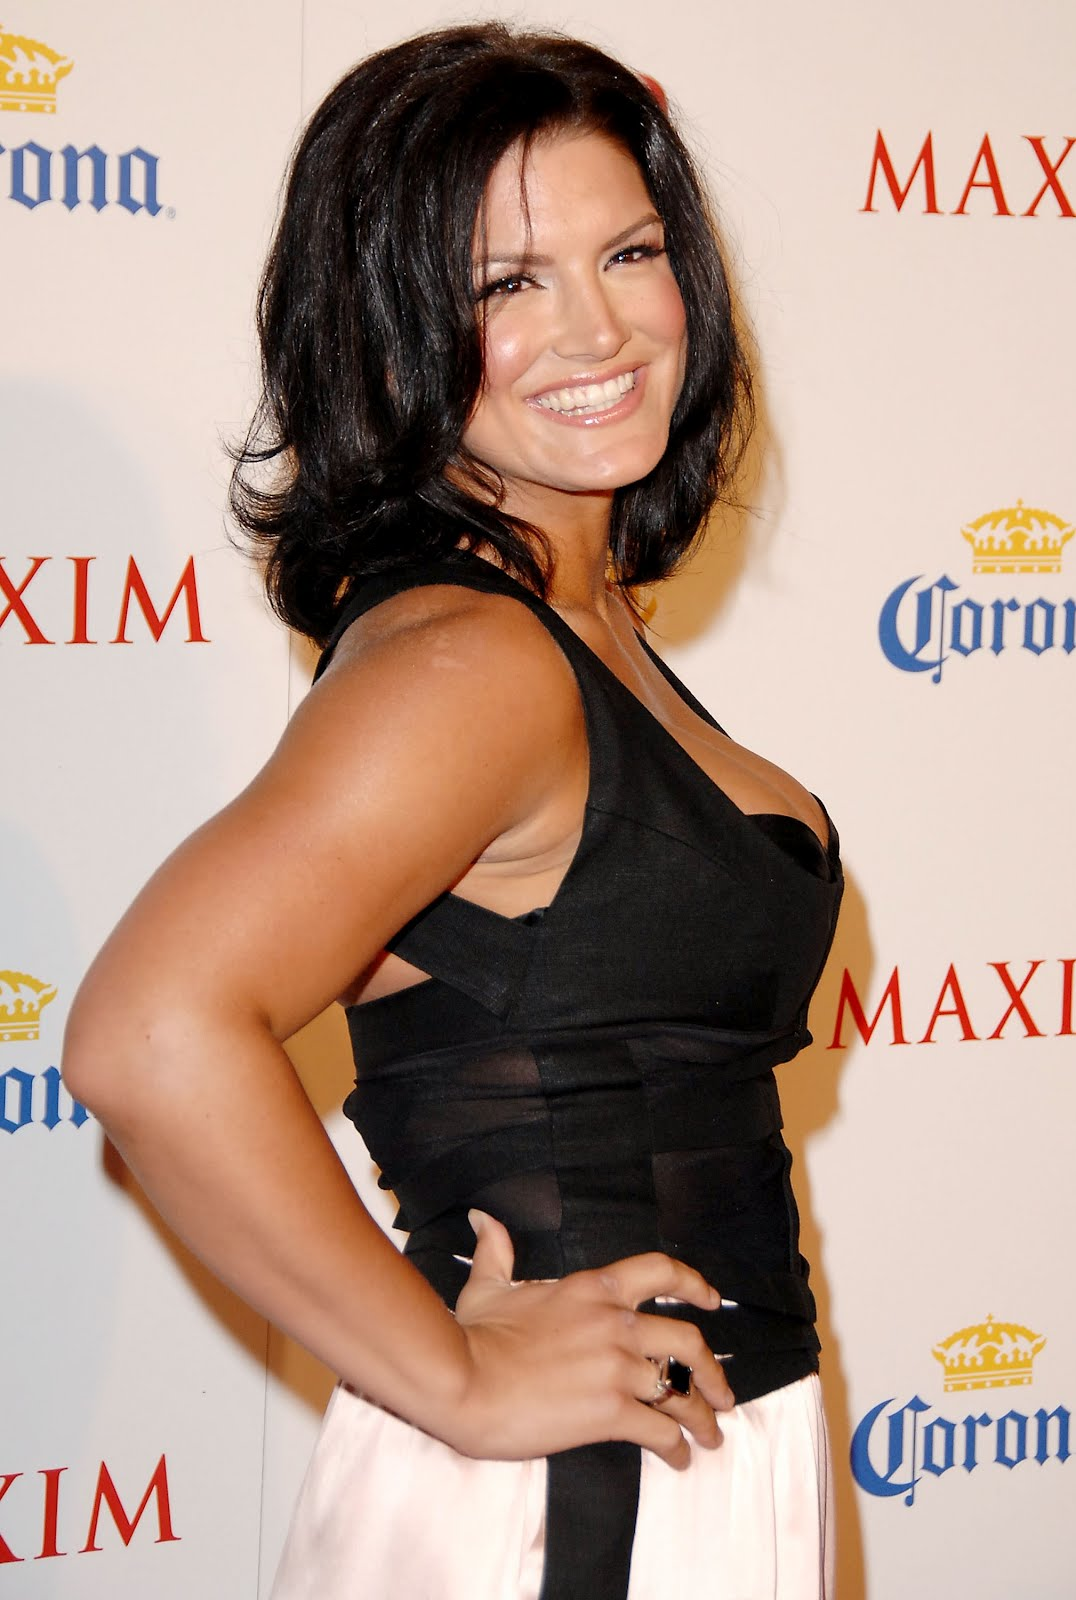 U0026quot Face Of Women U0026 39 S Mma U0026quot  Gina Carano Best Mma Female Fighter